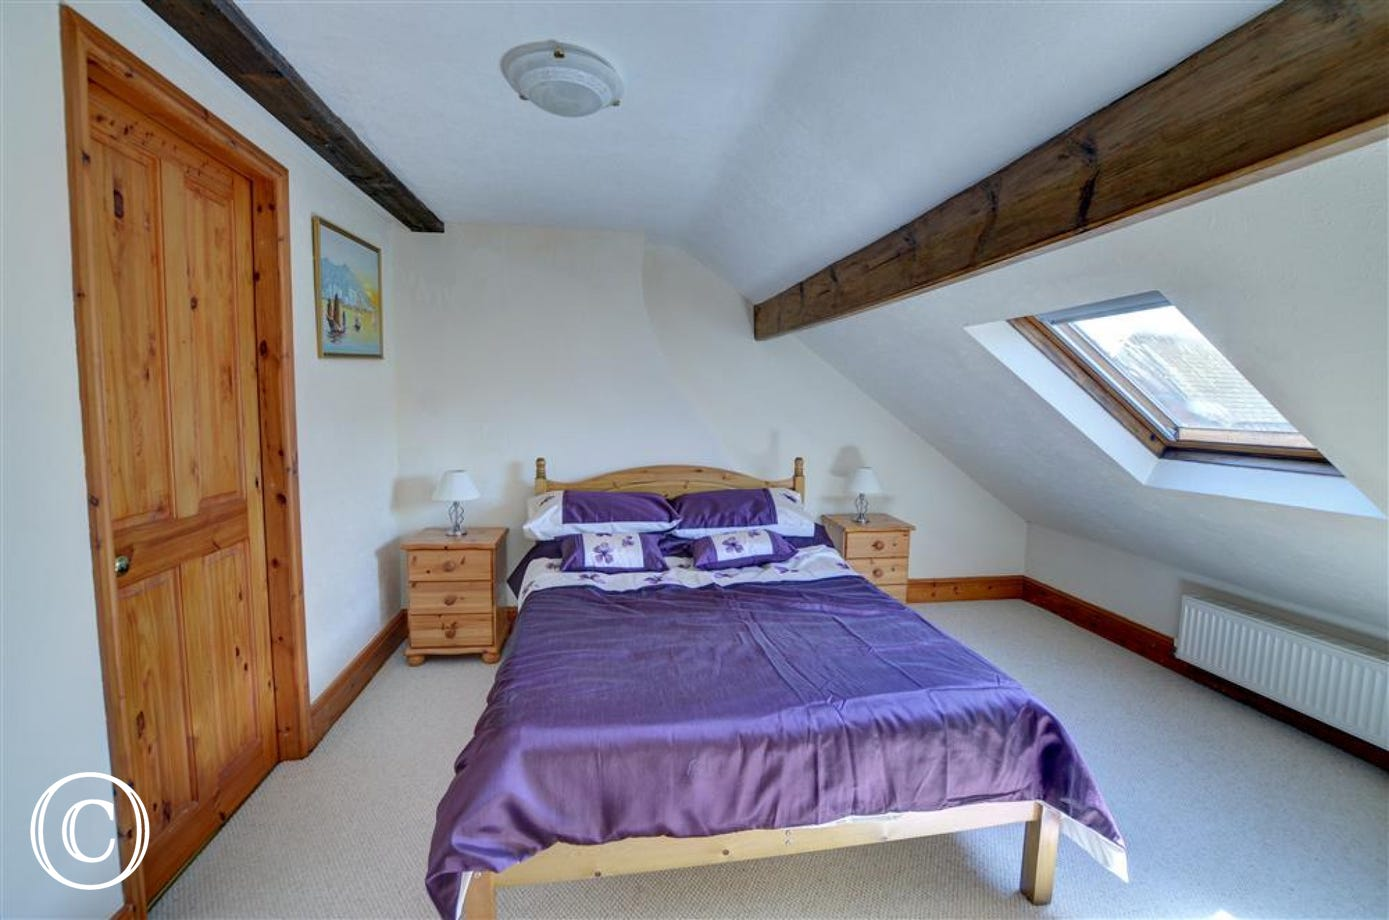 There are wooden beams and slightly sloping ceiling in Bedroom 3.